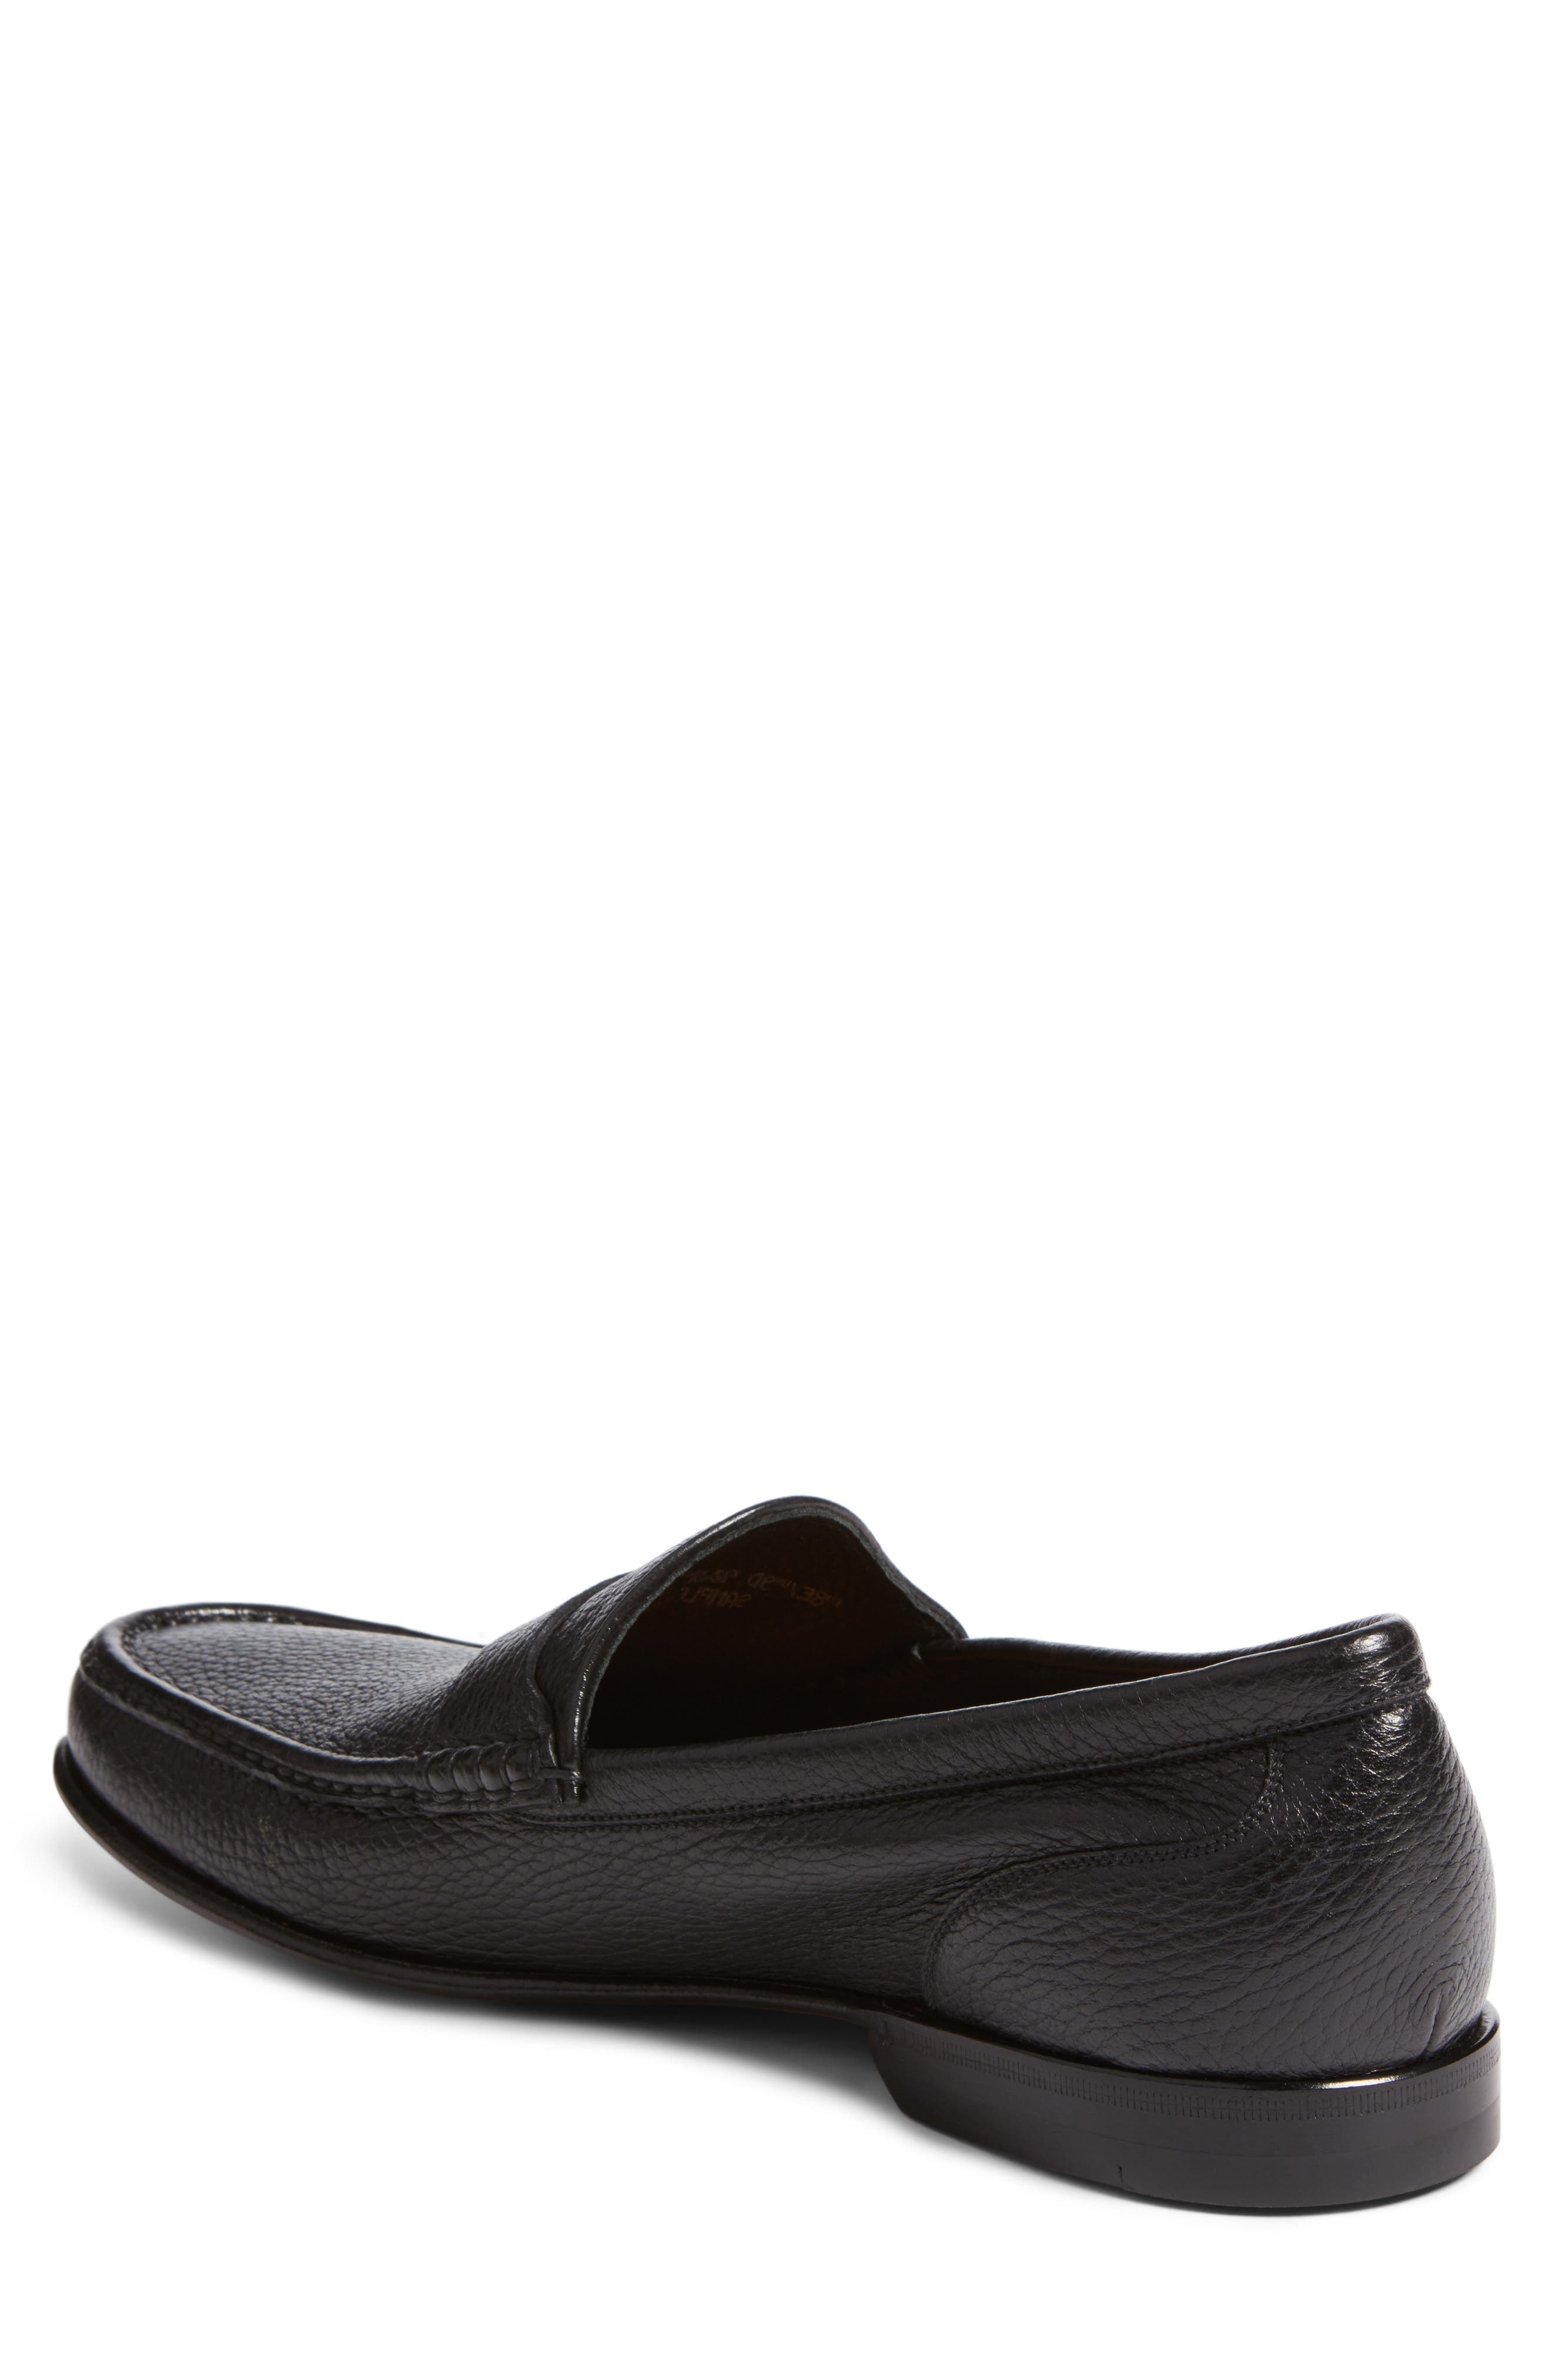 Suver Loafer,                             Alternate thumbnail 2, color,                             001